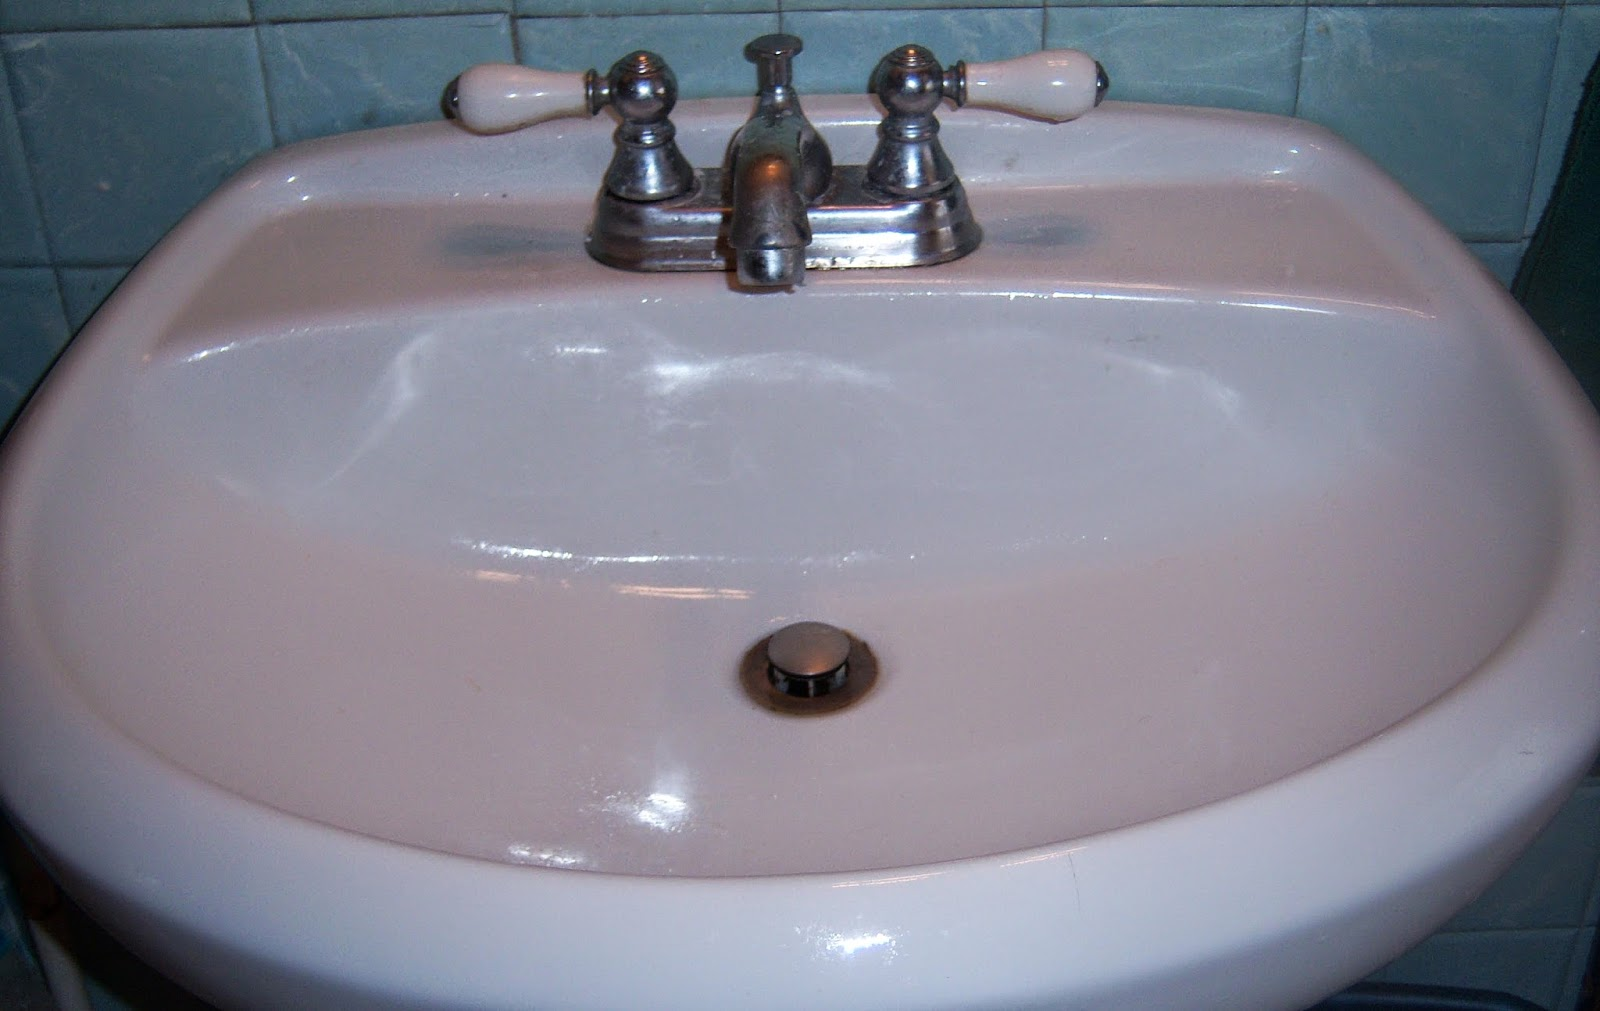 Bathroom sink cleaner 28 images is it true that - Best way to clean kitchen sink drain ...